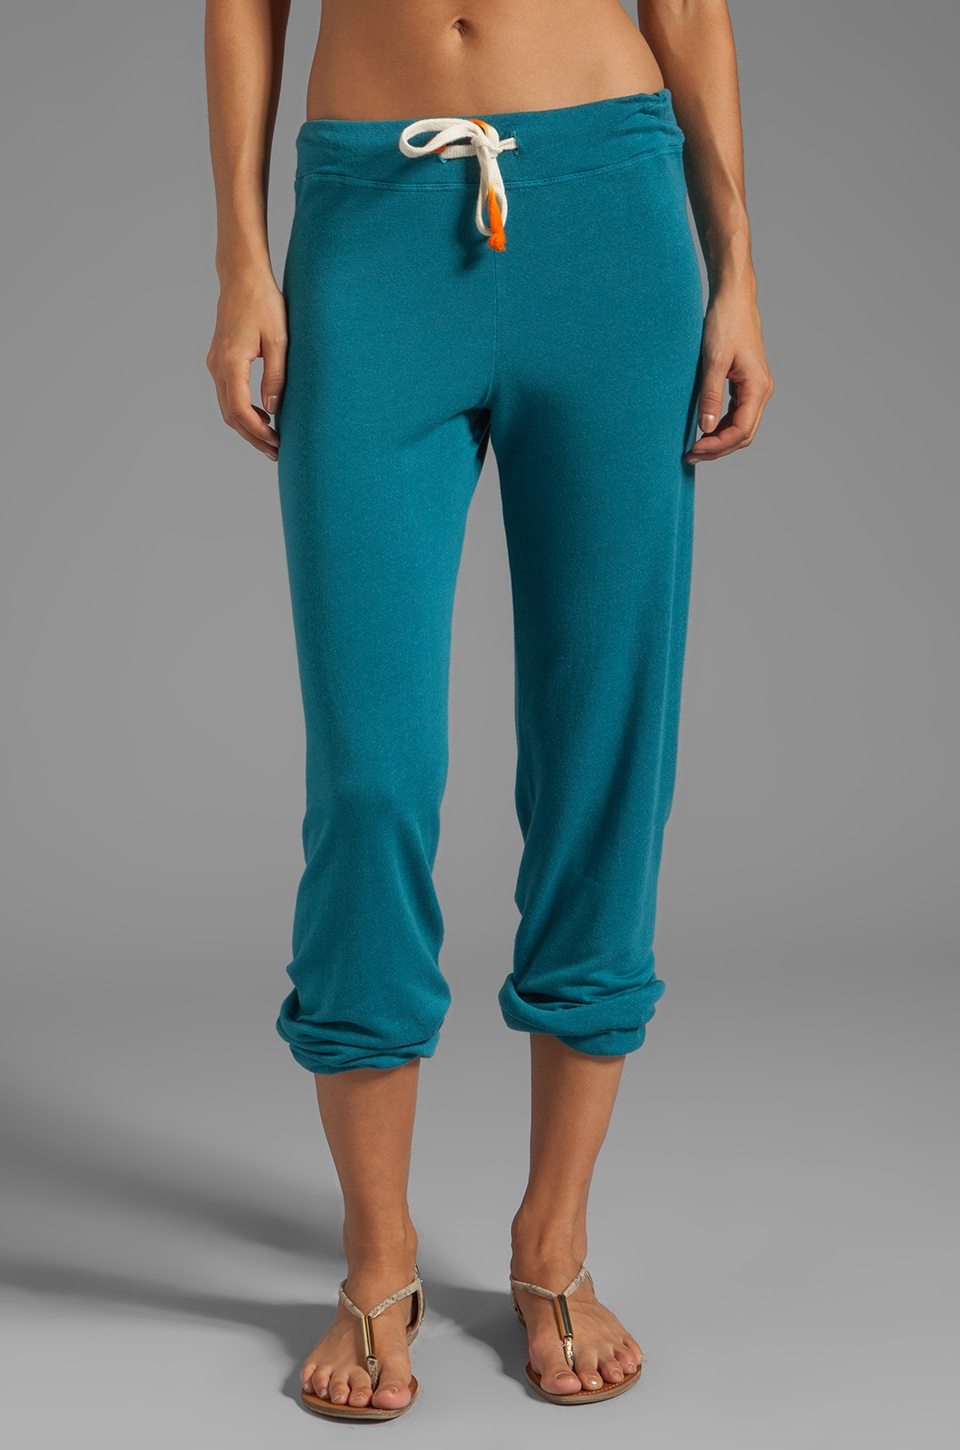 SUNDRY Classic Sweatpants in Peacock